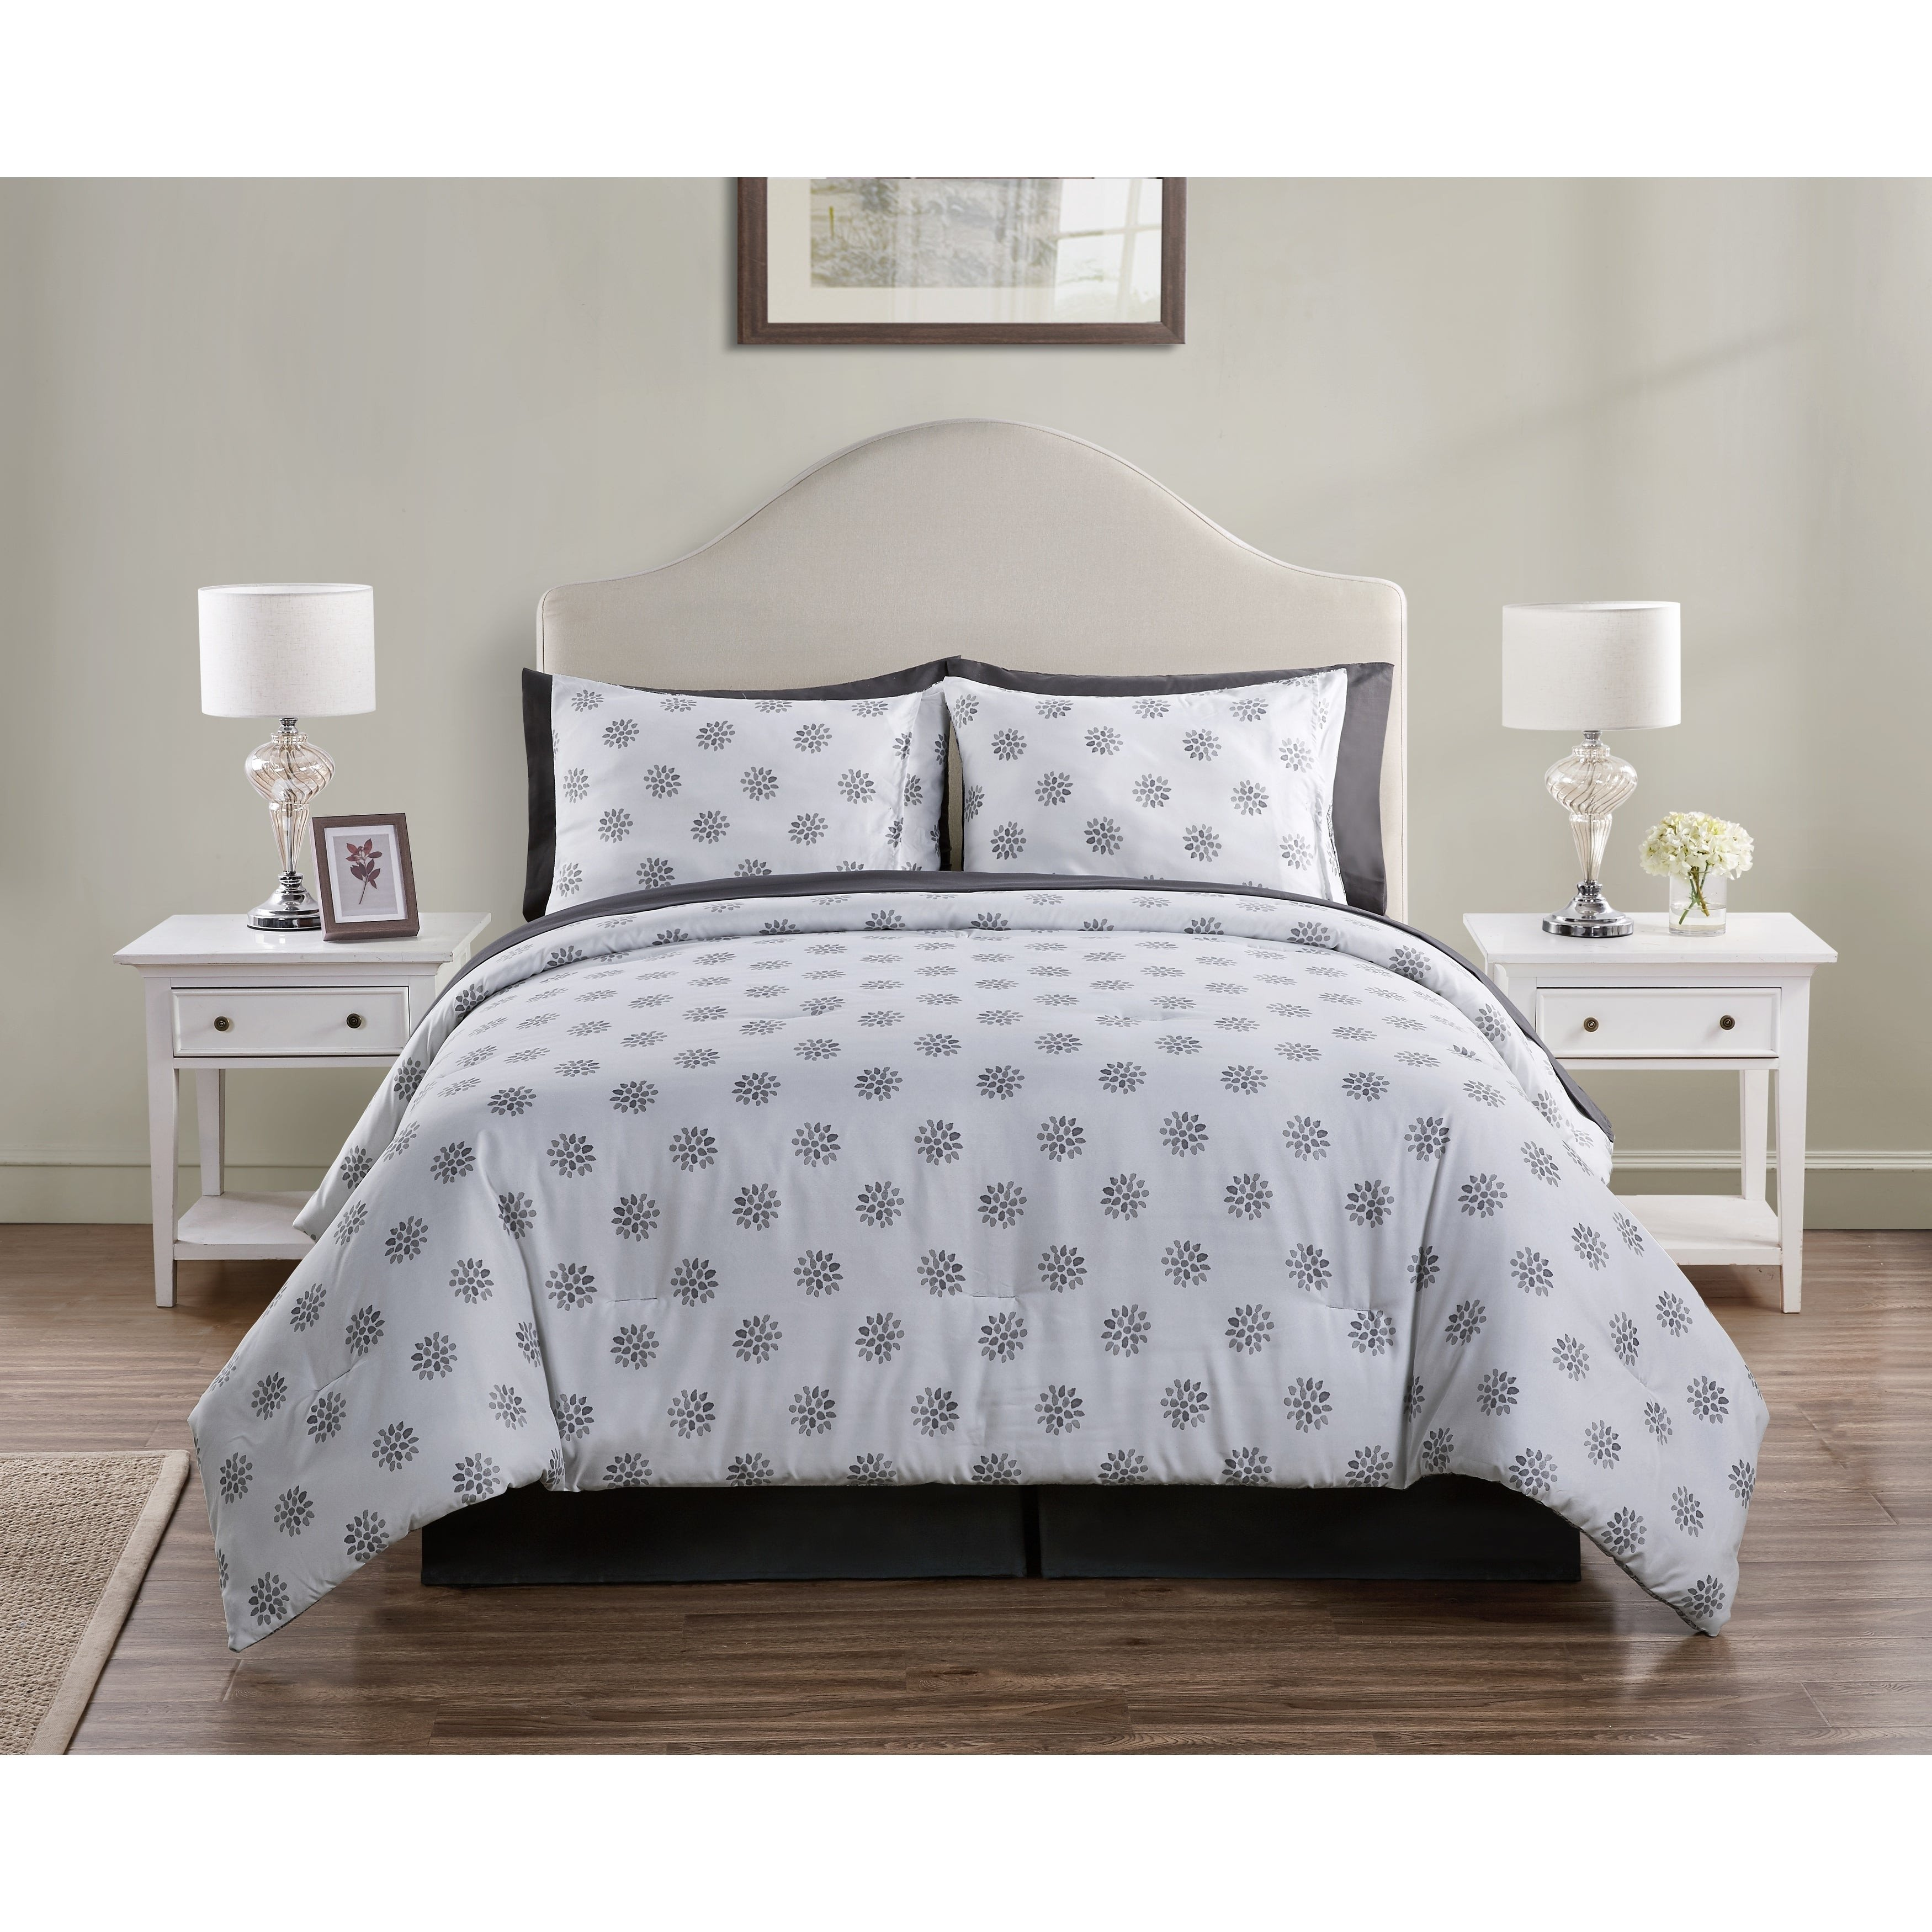 Cheap Bedroom Comforter Set Inspirational Vcny Home Lila Reversible Paisley Bed In A Bag forter Set